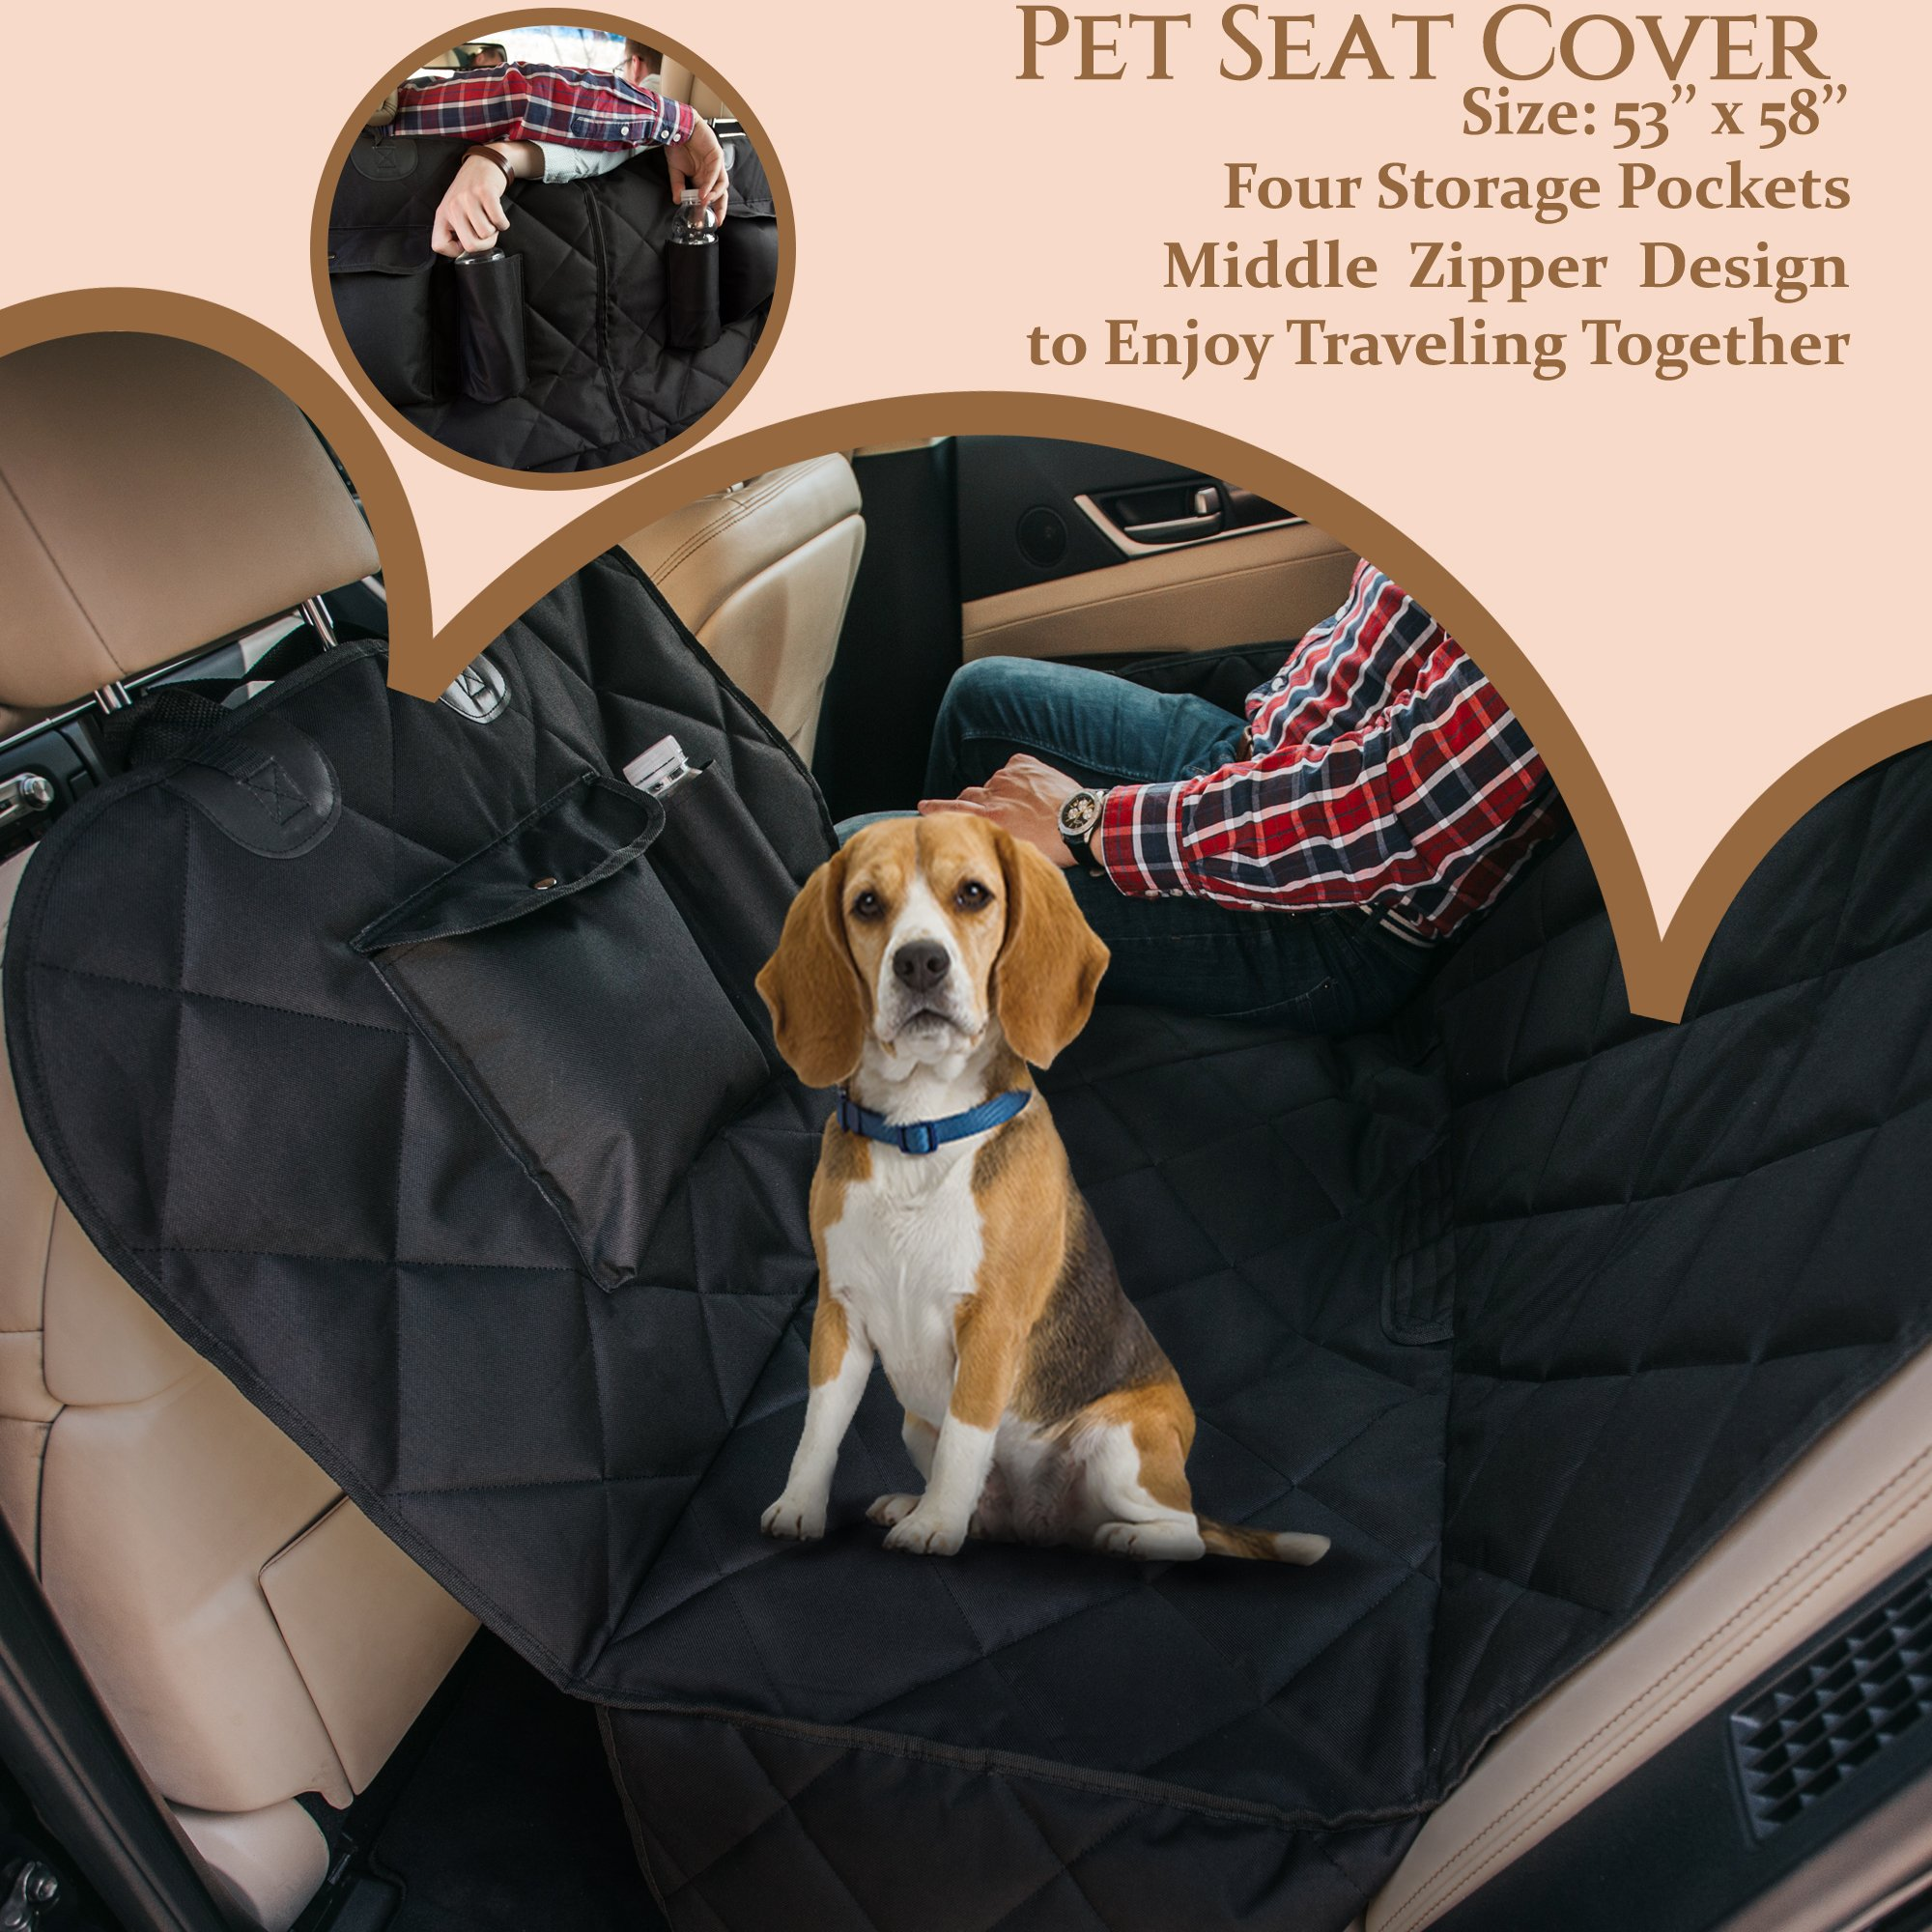 EVOest Dog Car Seat Cover for Cars/Trucks/SUV's,Hammock Convertible, Waterproof Pet Back Seat Protector with Extra Side Flaps, Bonus Pet Seat Belt & Carry Bag (Medium) by EVOest (Image #9)